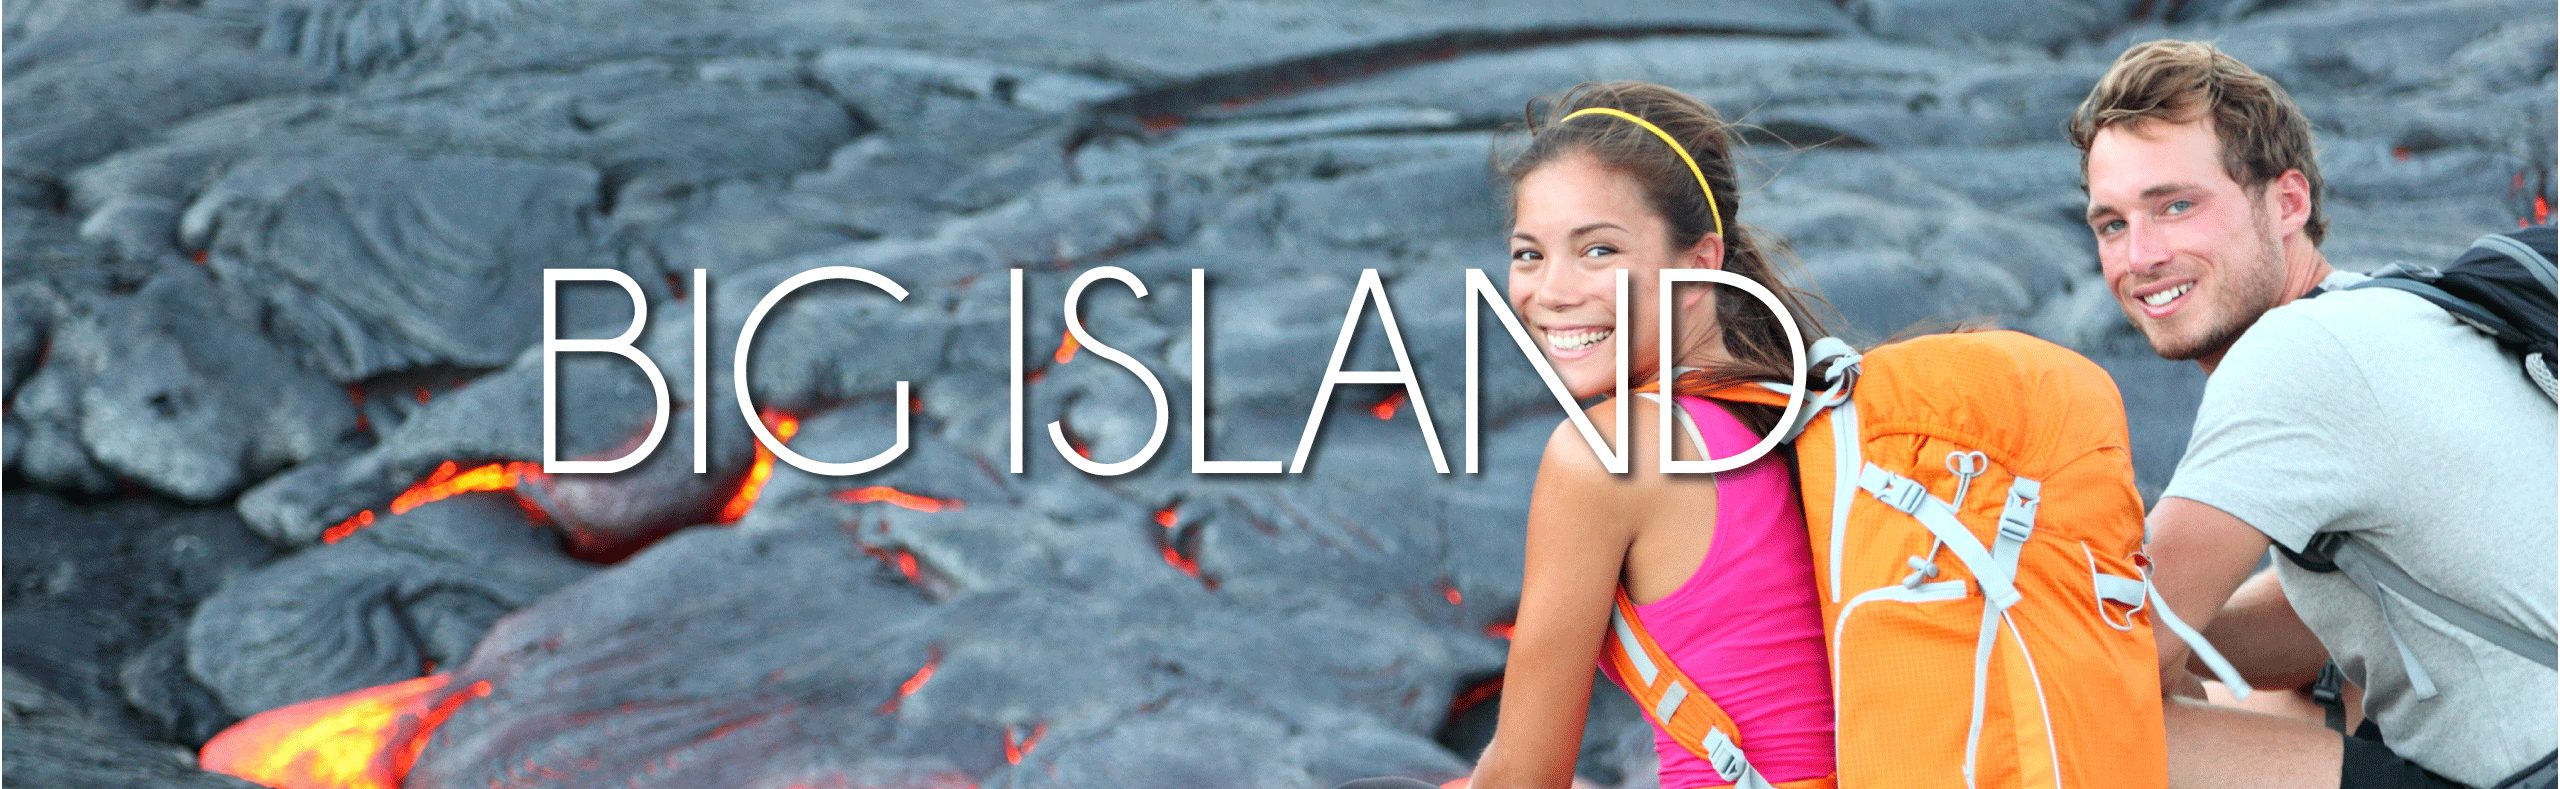 Some of the best kept secrets in Hawaii are the Big Island Activities and Big Island Tours!